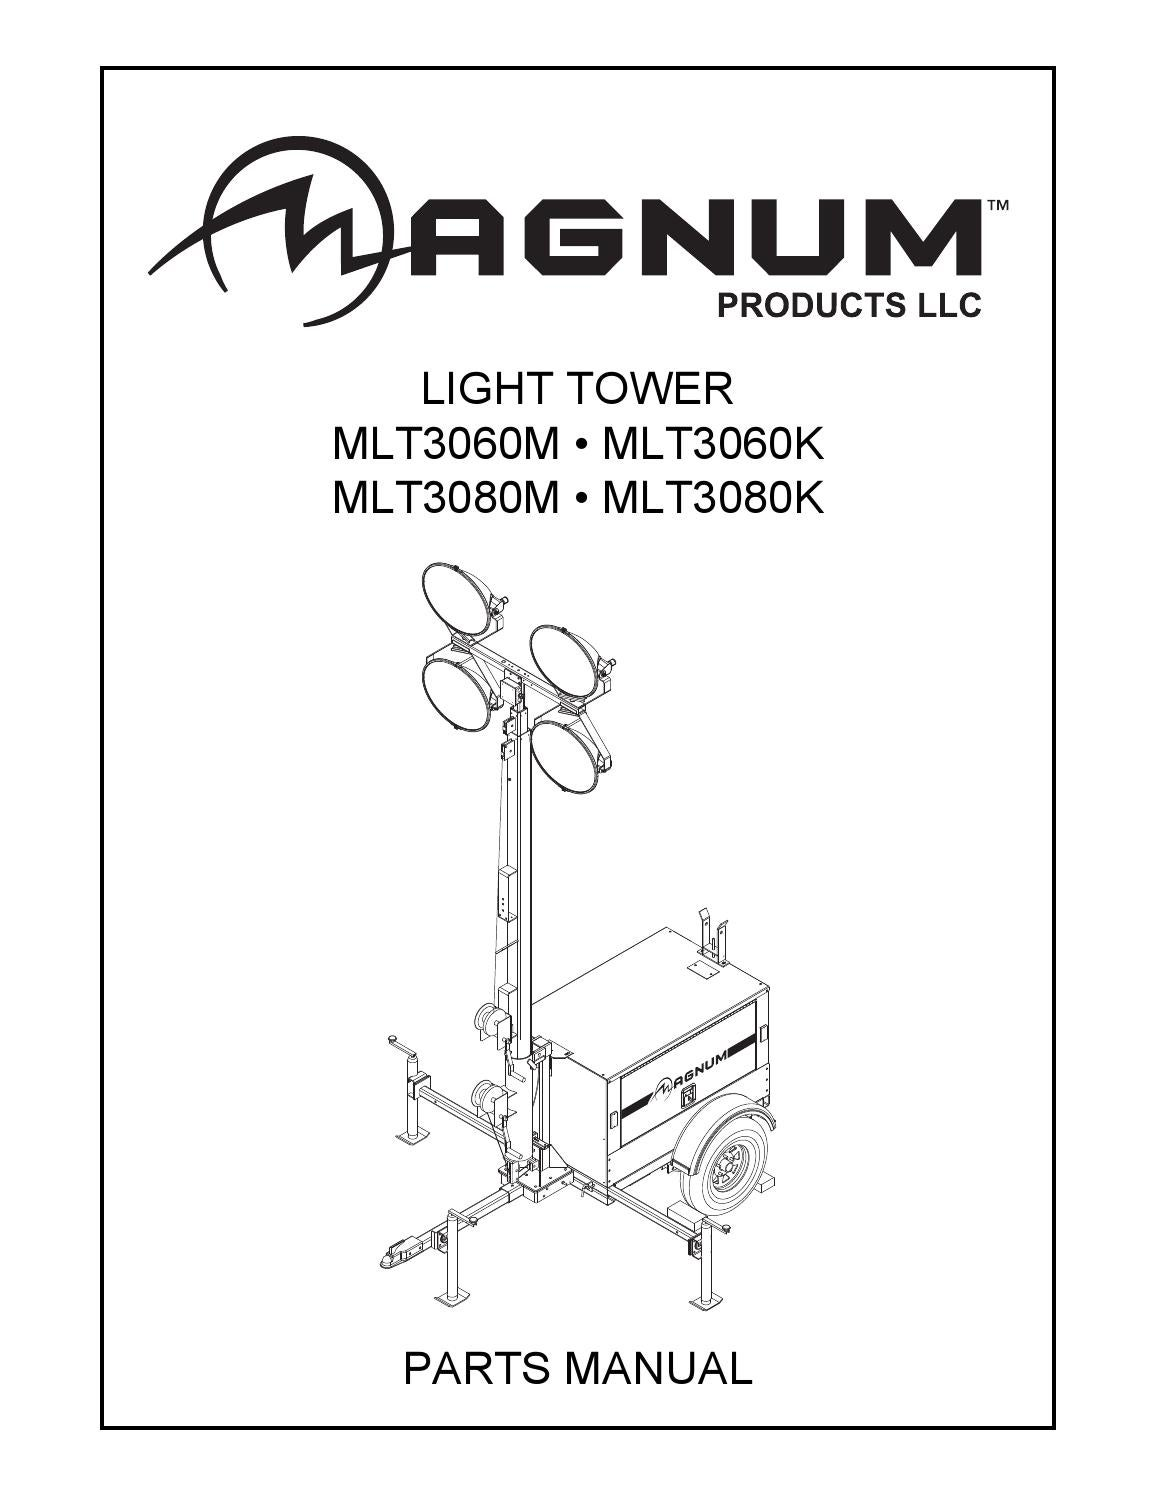 magnum parts manual by power generation